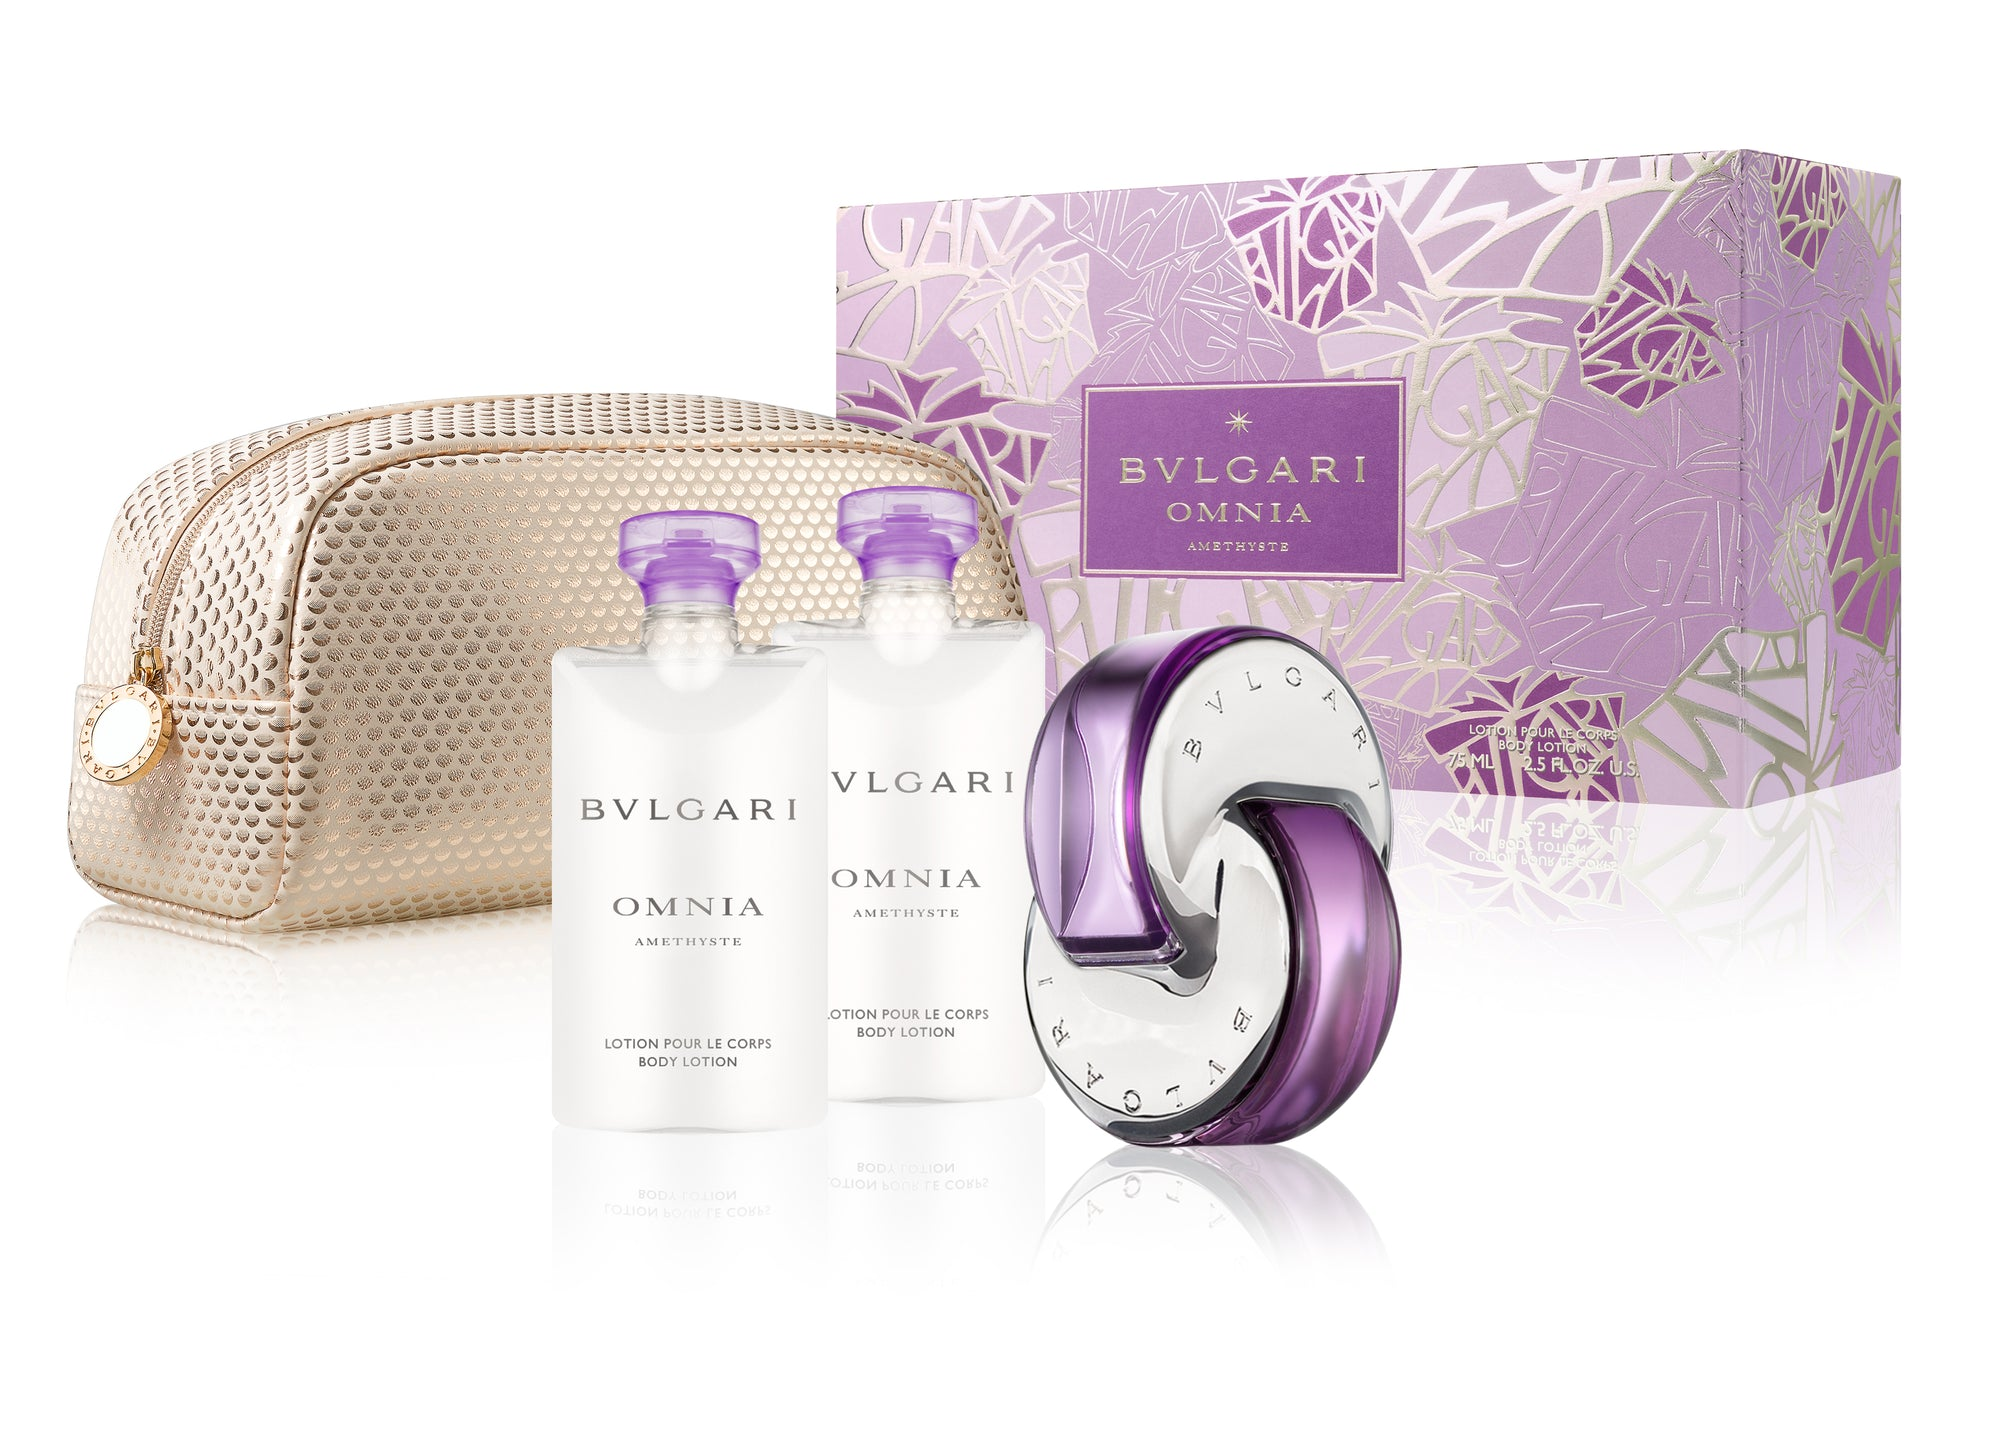 Bvlgari Omnia Amethyste 3pc Gift Set 65ml EDT (with beauty pouch)